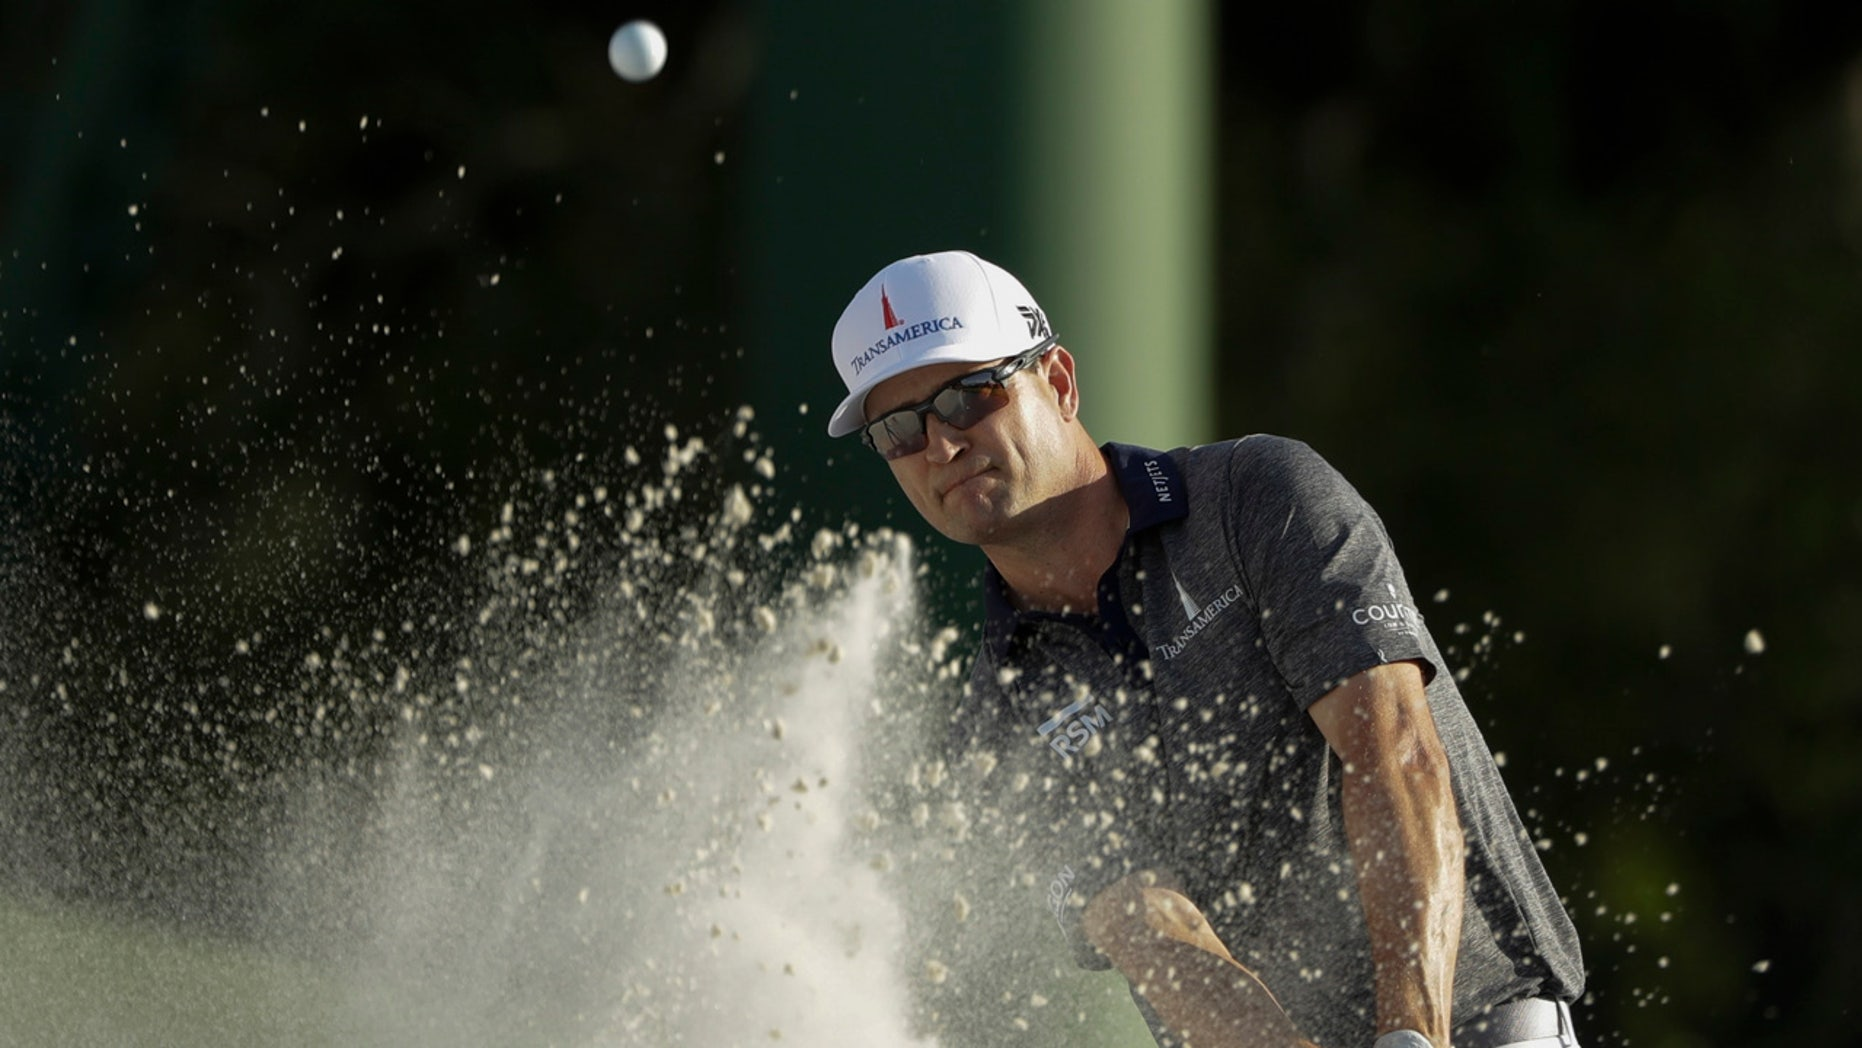 Westlake Legal Group johnson Zach Johnson, in Masters mishap, accidentally hits ball during practice swing: 'That's embarrassing' Paulina Dedaj fox-news/us/us-regions/southeast/georgia fox-news/sports/golf fox news fnc/sports fnc article 457e3f74-4c9b-582a-88be-911dc2c27a46